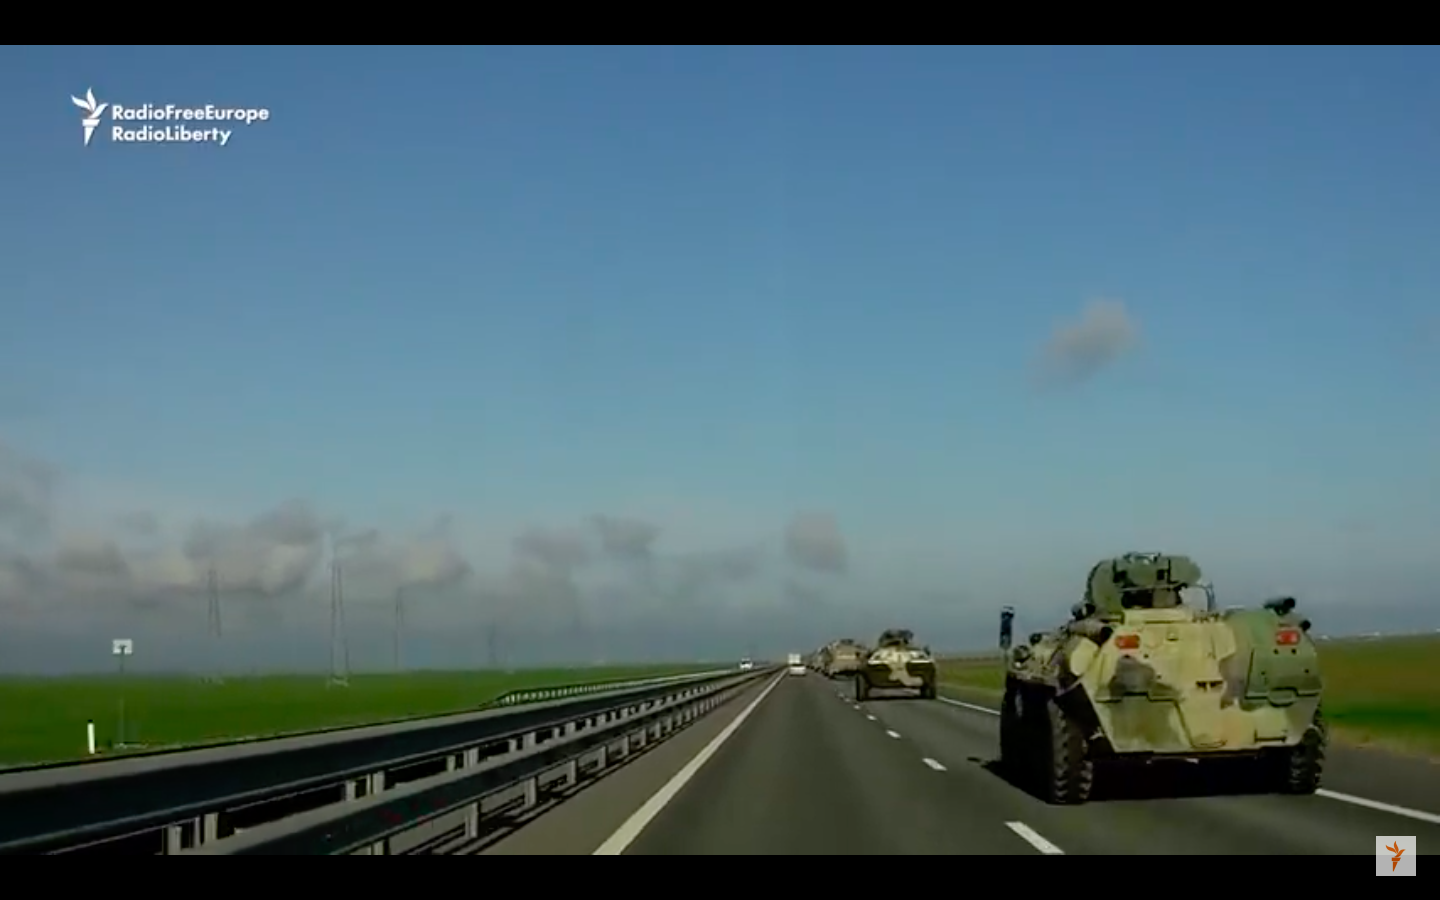 VIDEO: Russian Military Activity Ramps Up In Crimea Along Major Highway From Russia - Tsarizm